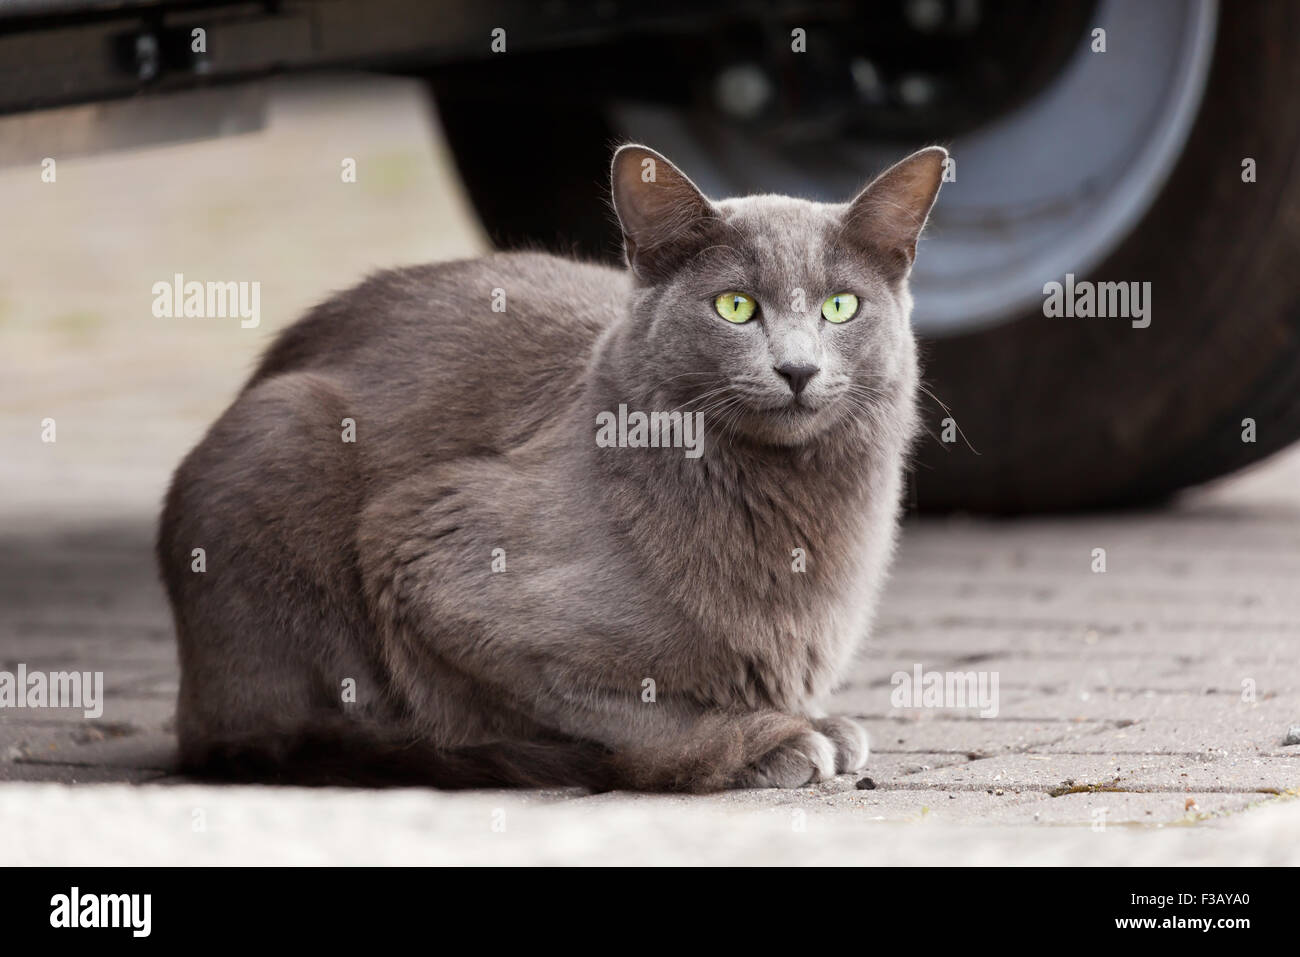 Gray cat with striking green eyes - Stock Image